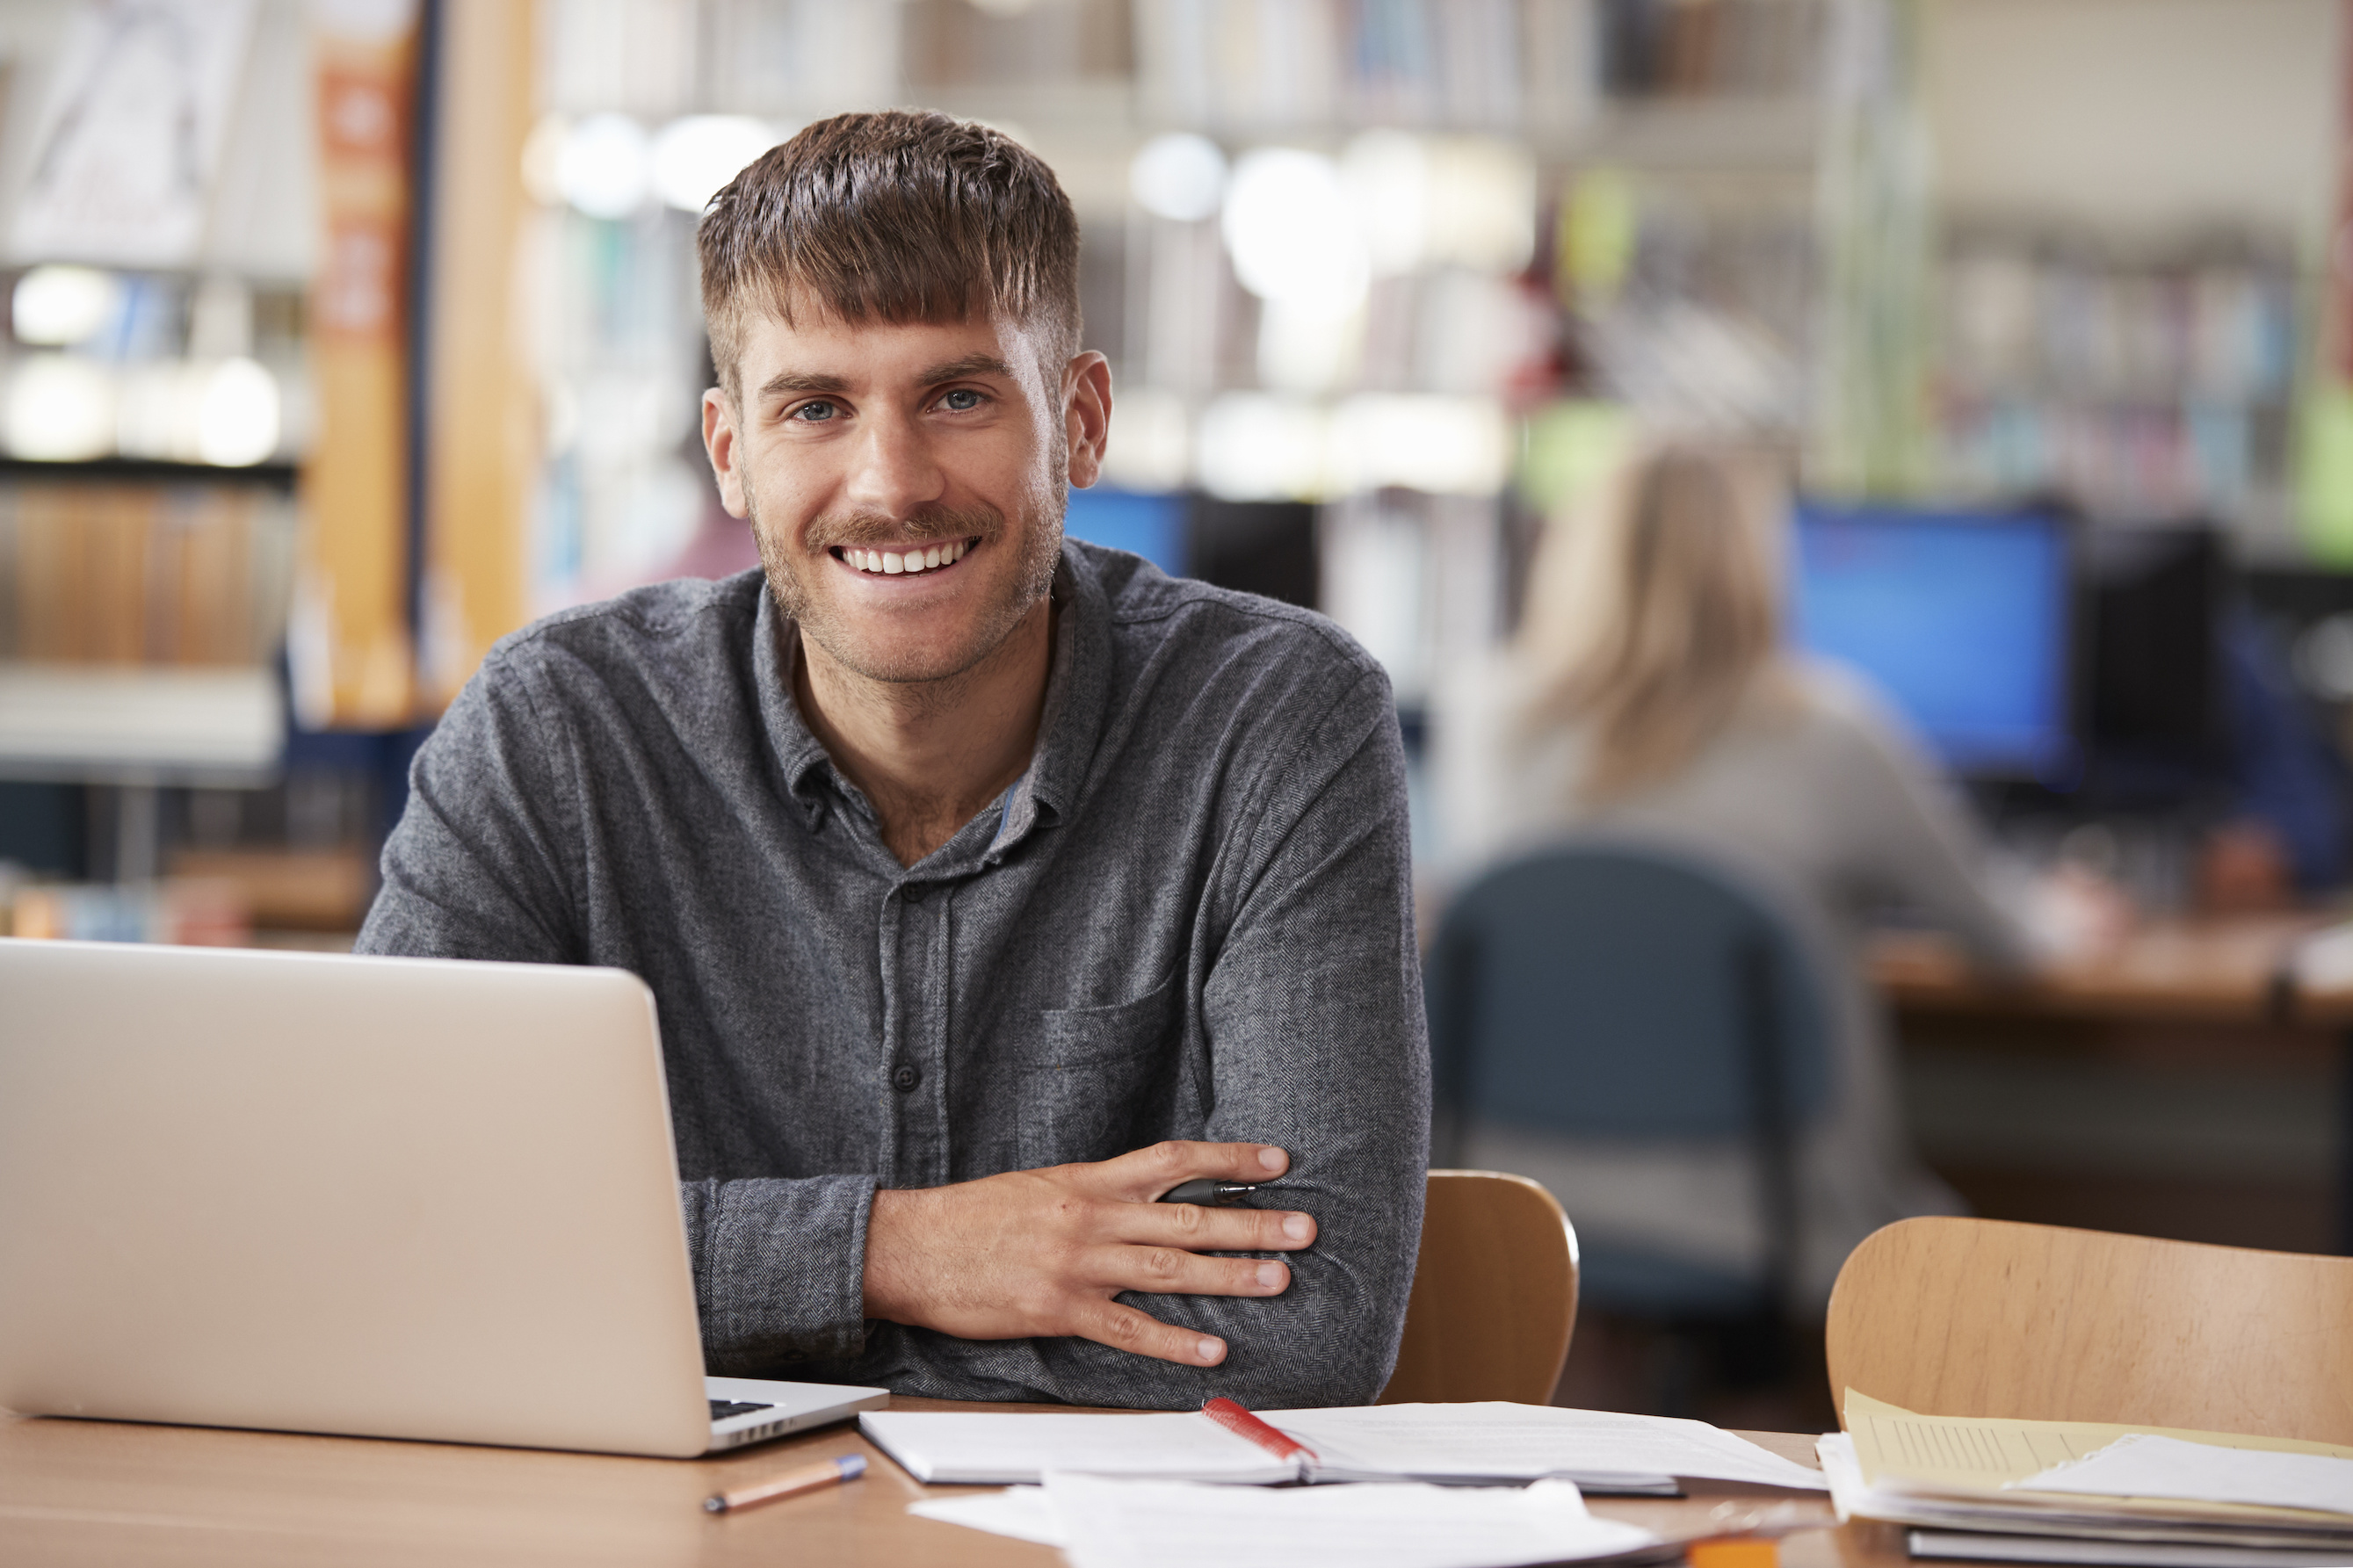 Smiling male teacher at desk